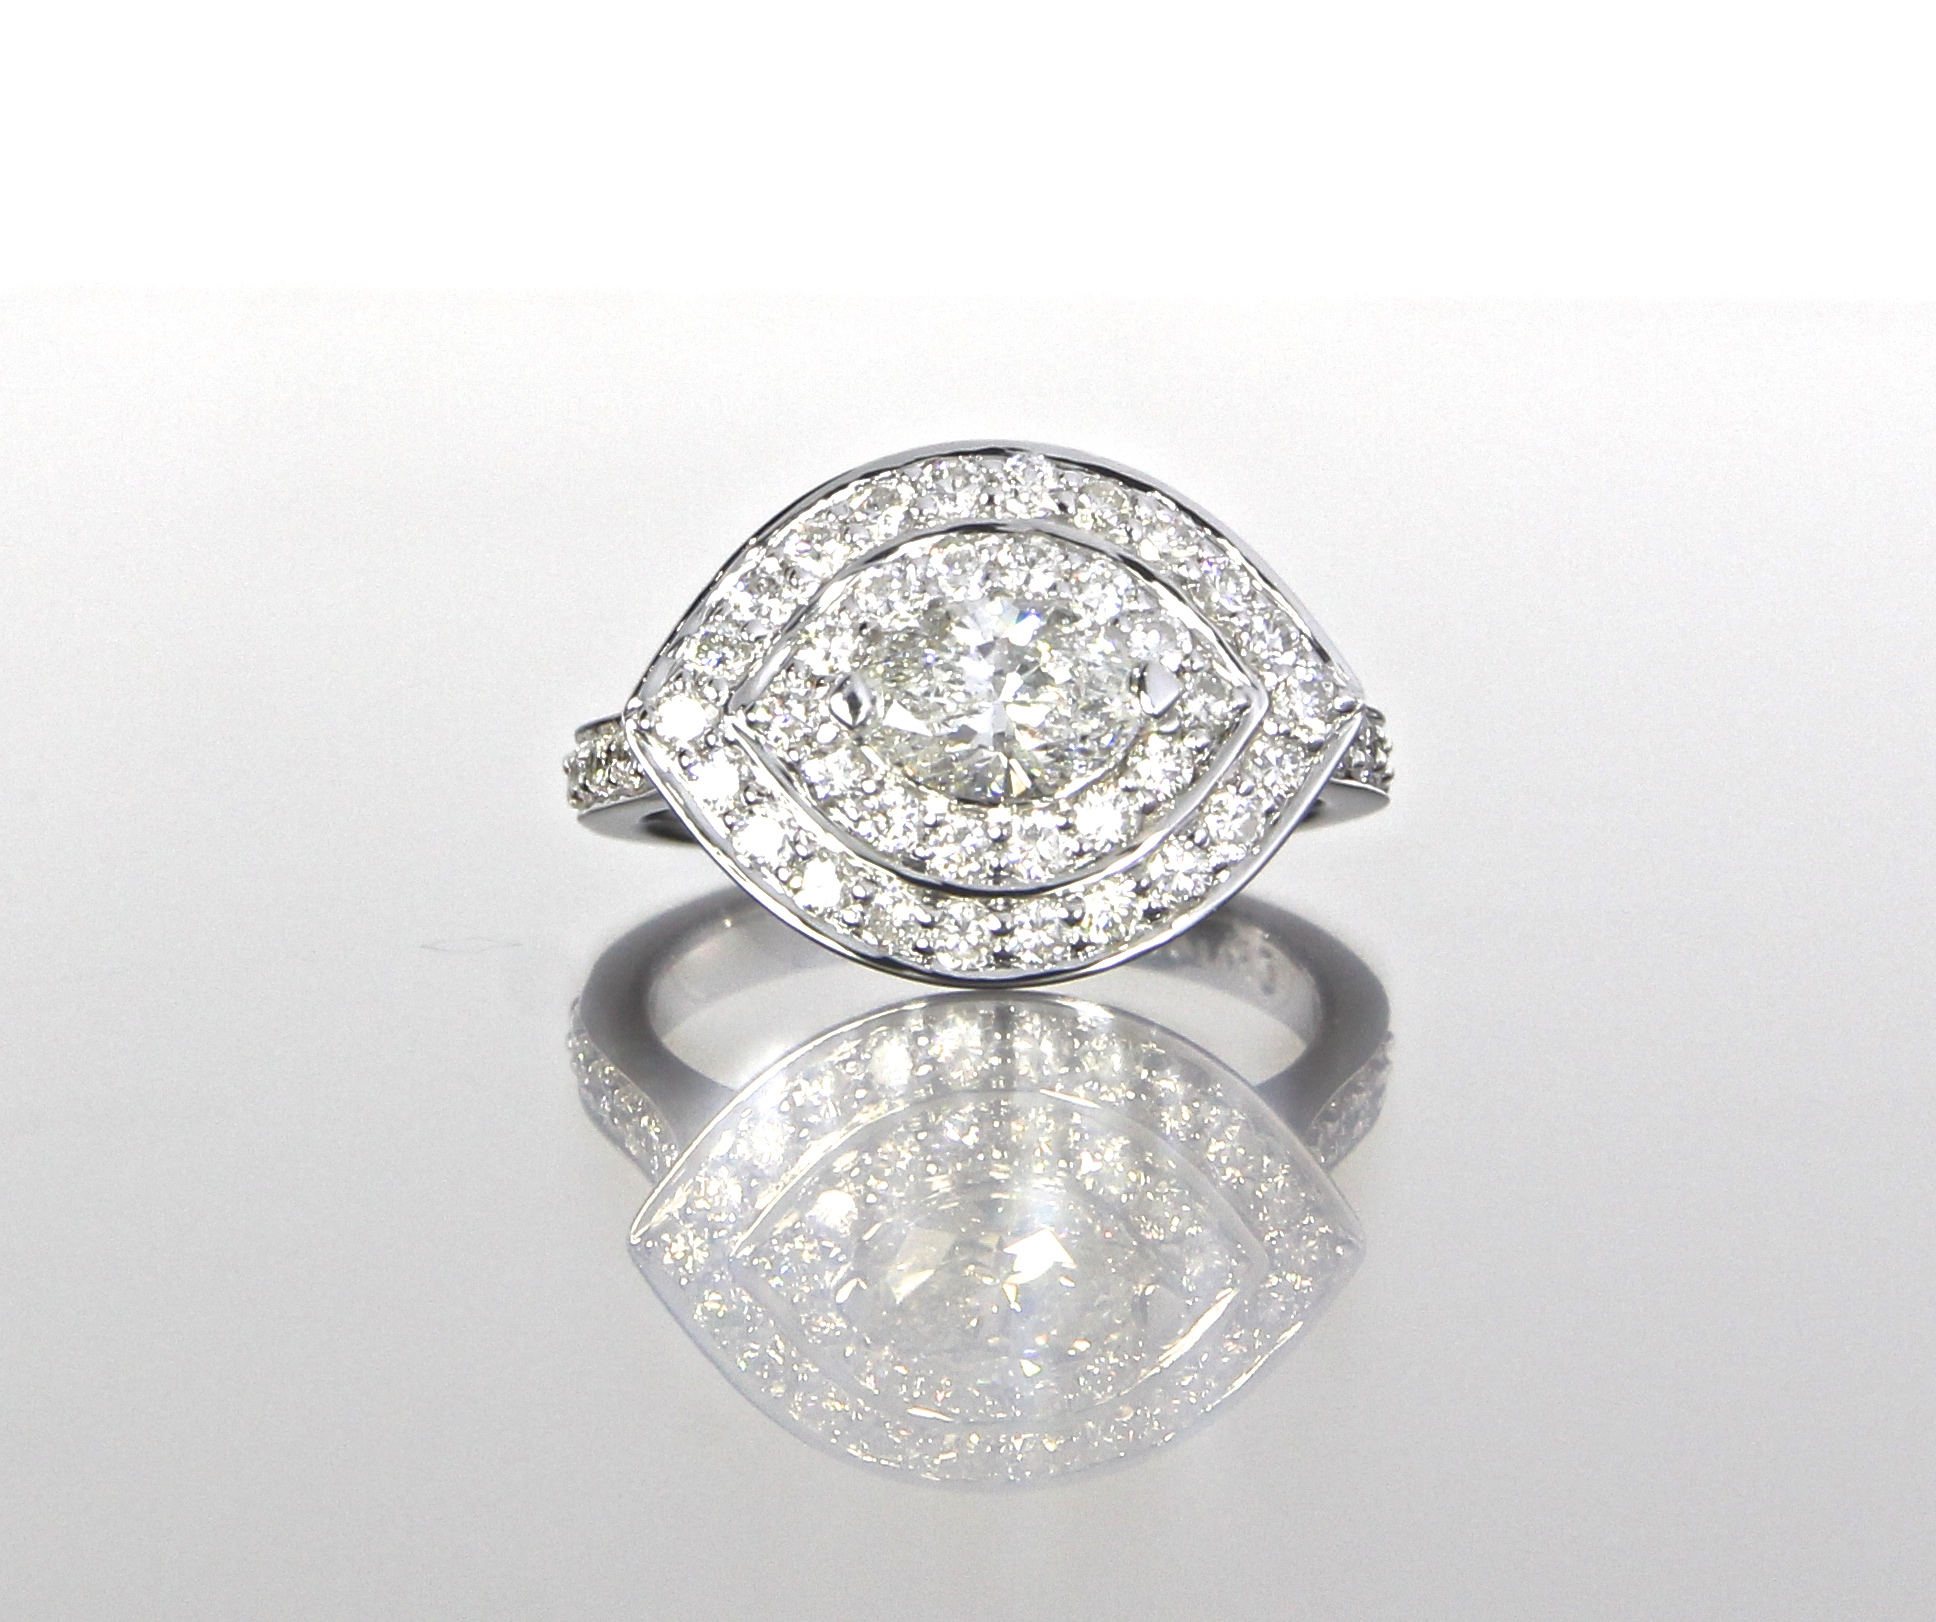 unique-marquise-diamond-engagement-ring-double-halo-craft-revival-jewelry-store-grand-rapids.jpg